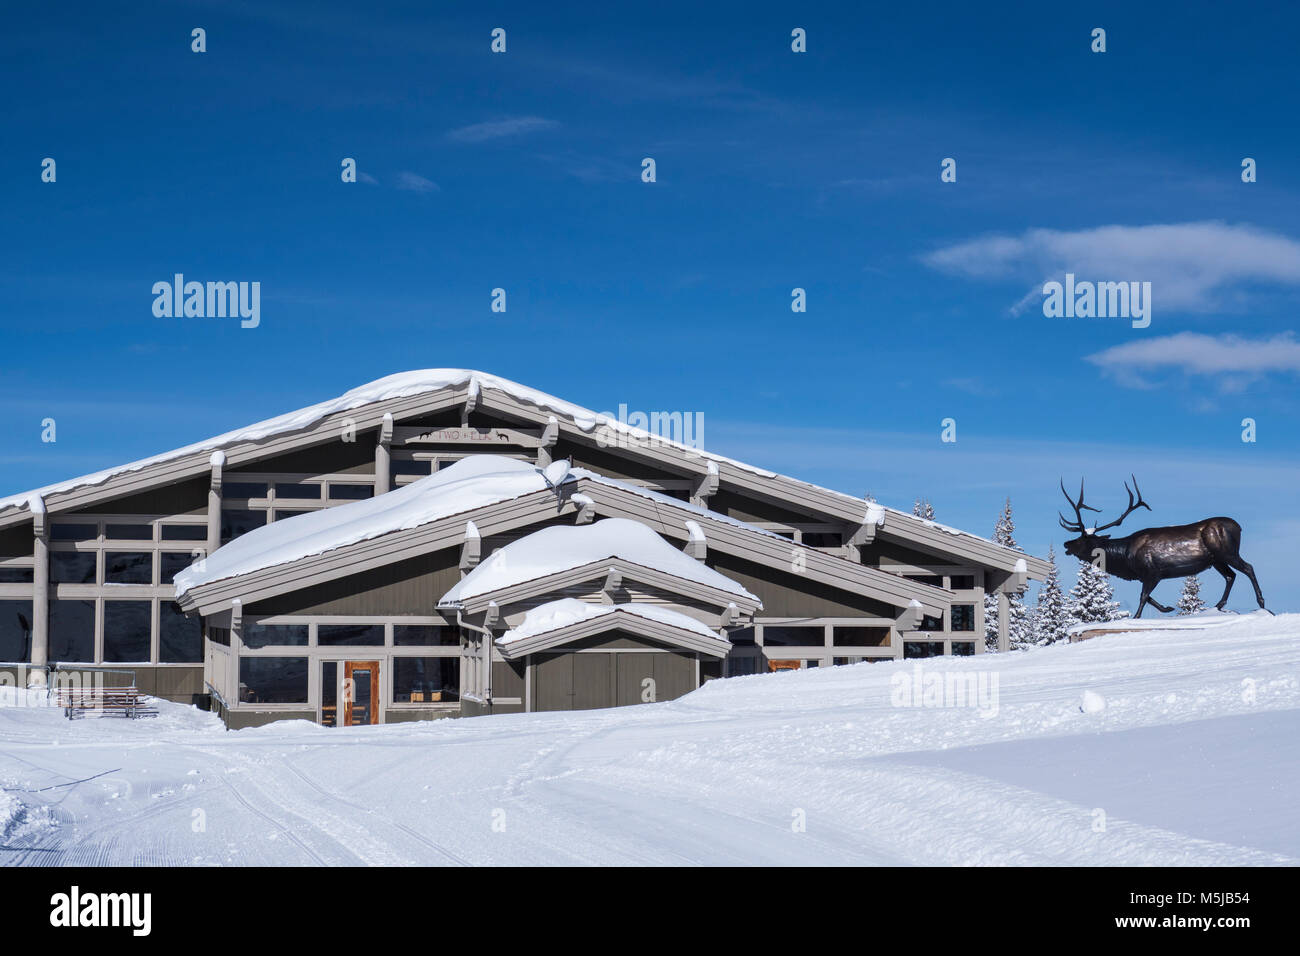 Two Elk day lodge and restaurant, winter, Vail Ski Resort, Vail, Colorado. - Stock Image